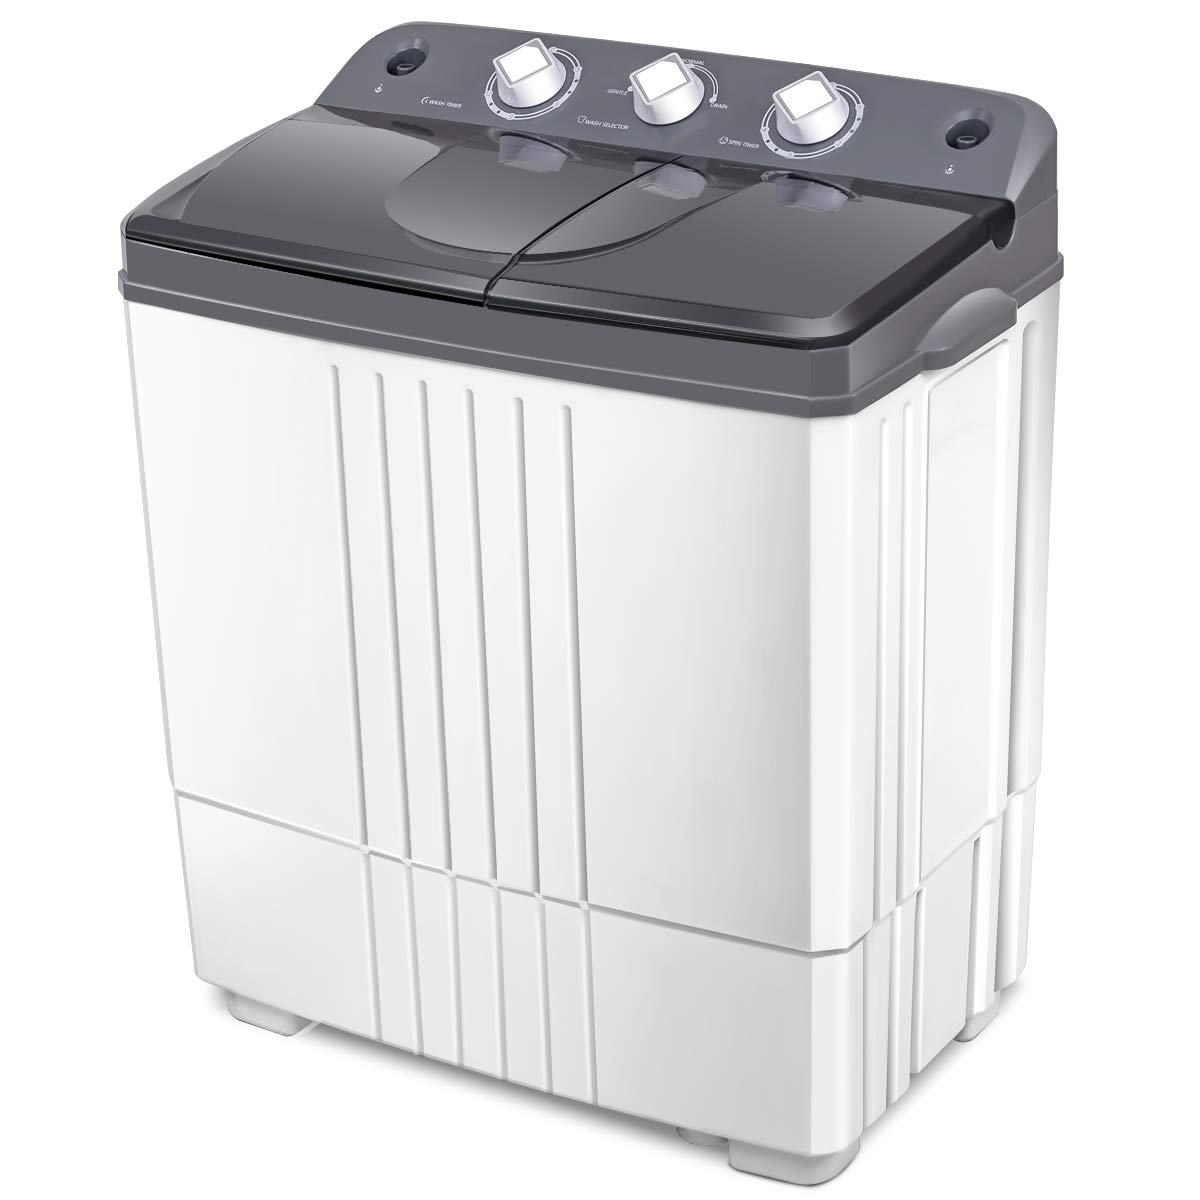 Giantex Portable Washing Machine Compact Twin Tub Washer and Spain Spinner Laundry Clothes Washer (12lbs for washing and 8lbs for Spinning- Gray+ White) by Giantex